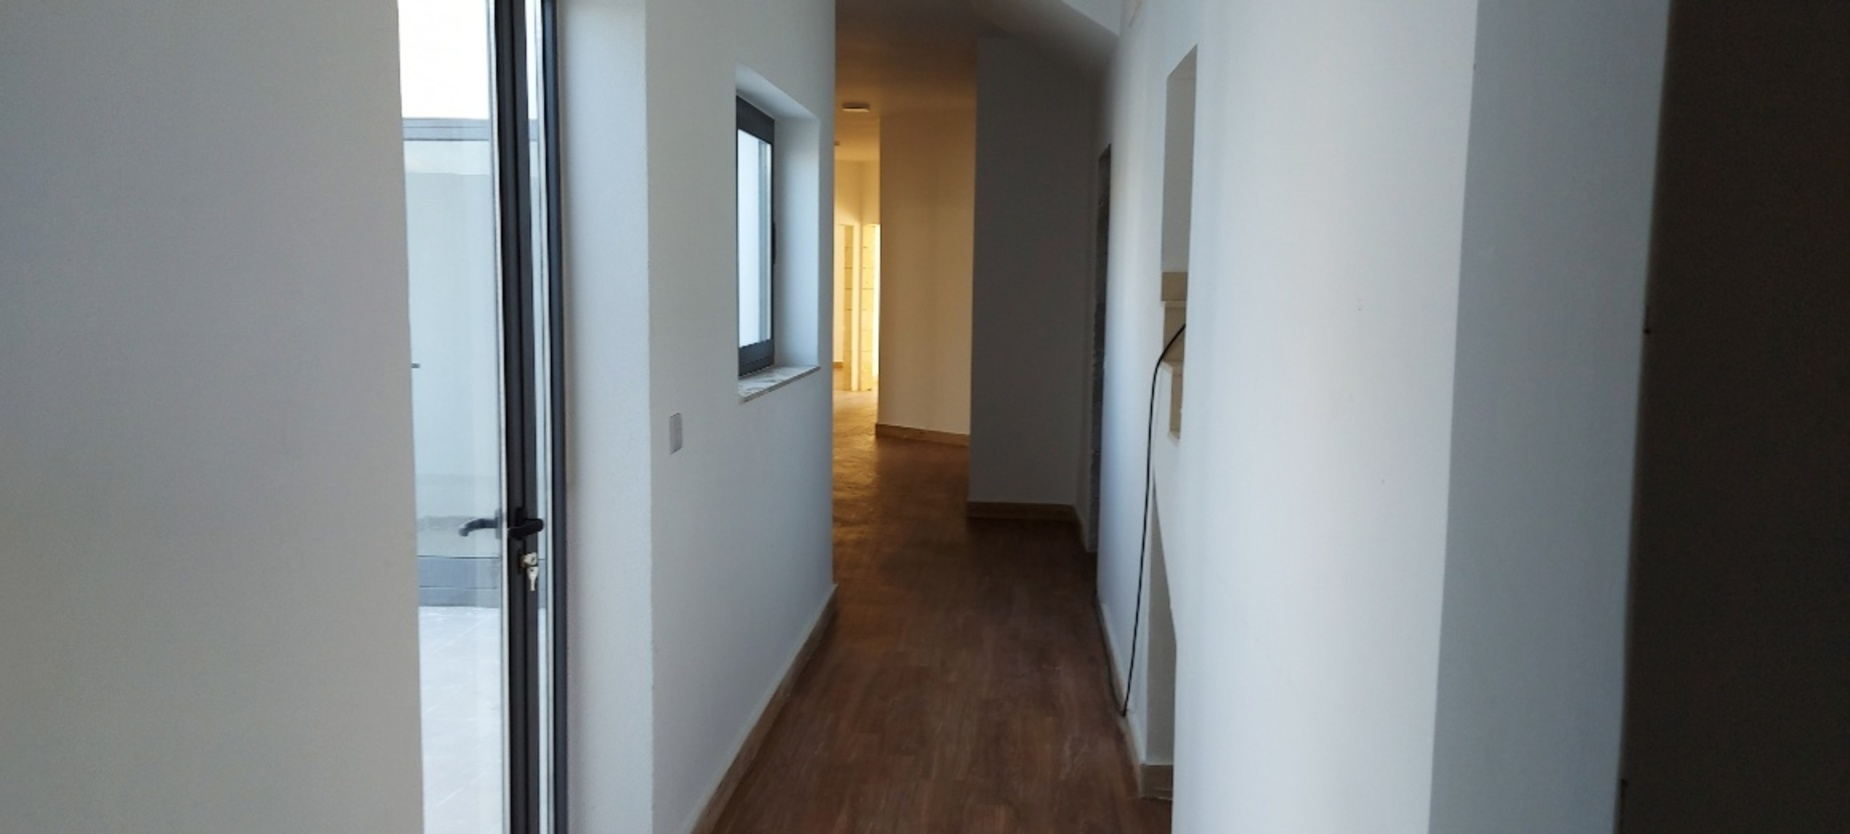 4 bed Penthouse For Sale in Mellieha, Mellieha - thumb 11